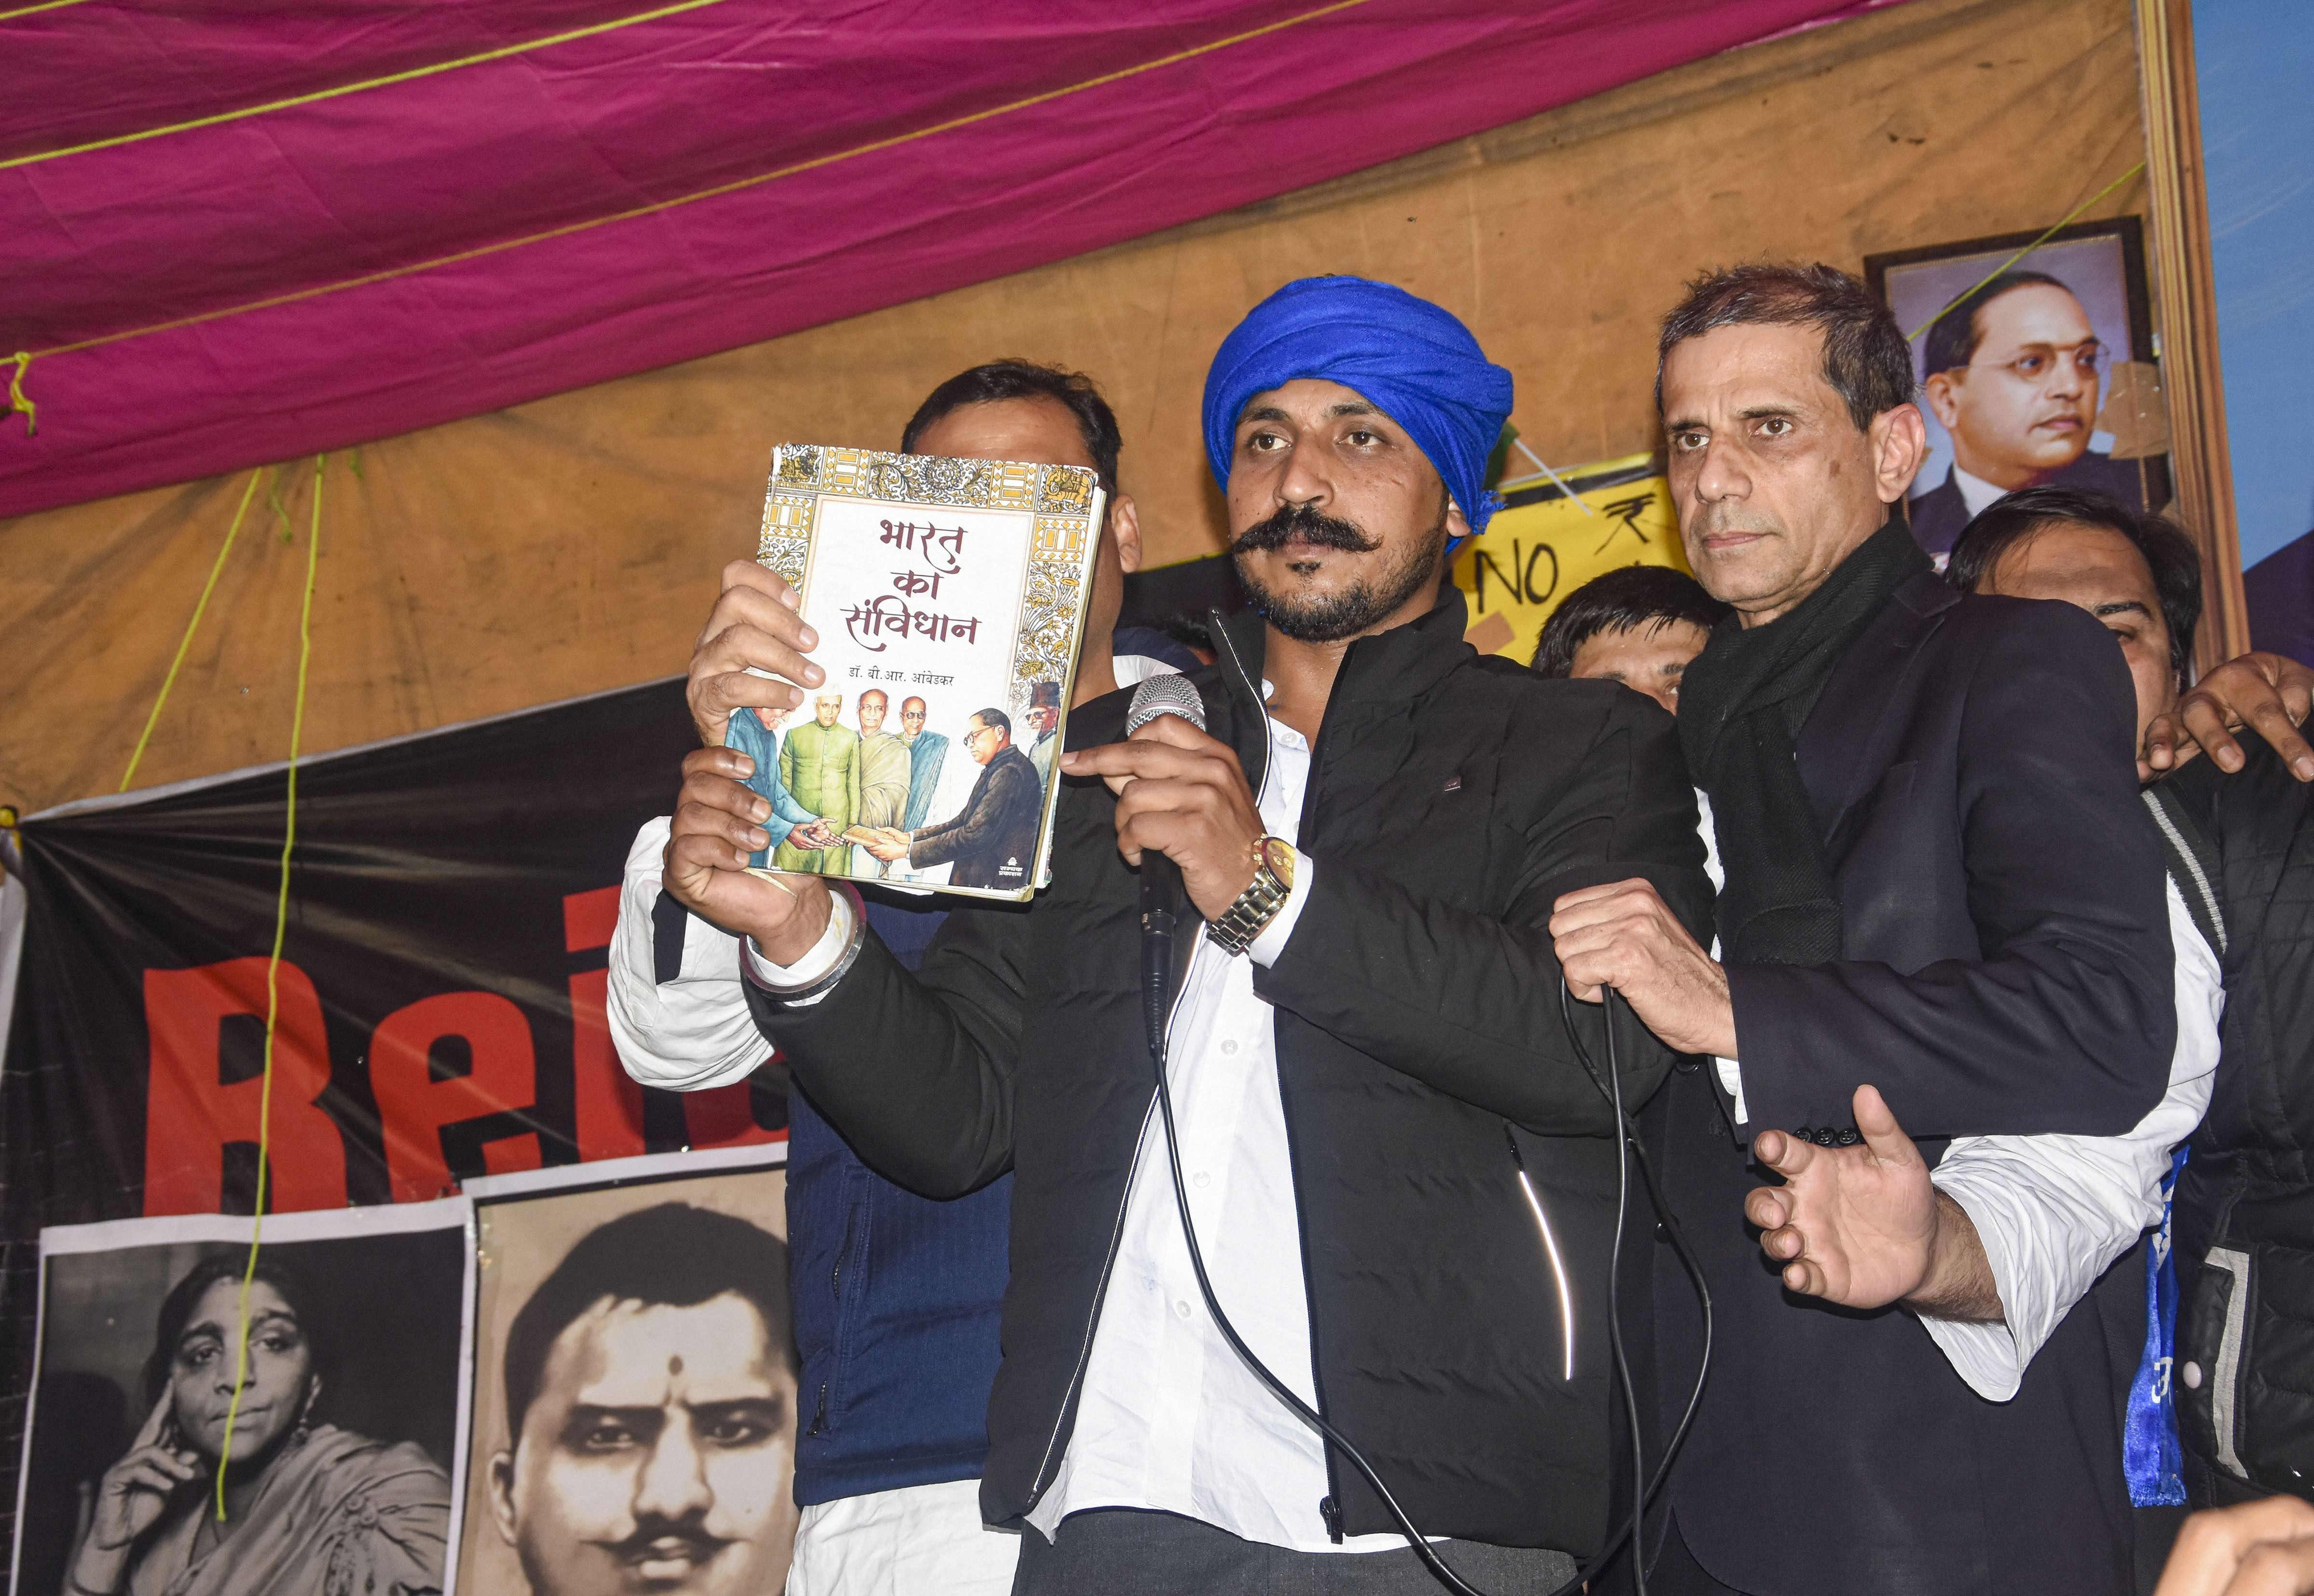 Bhim Army Chief Chandrasekhar Azad holds a copy of the Indian constitution during the ongoing protest against NRC and CAA at Shaheen Bagh in New Delhi, Wednesday, Jan. 22, 2020.